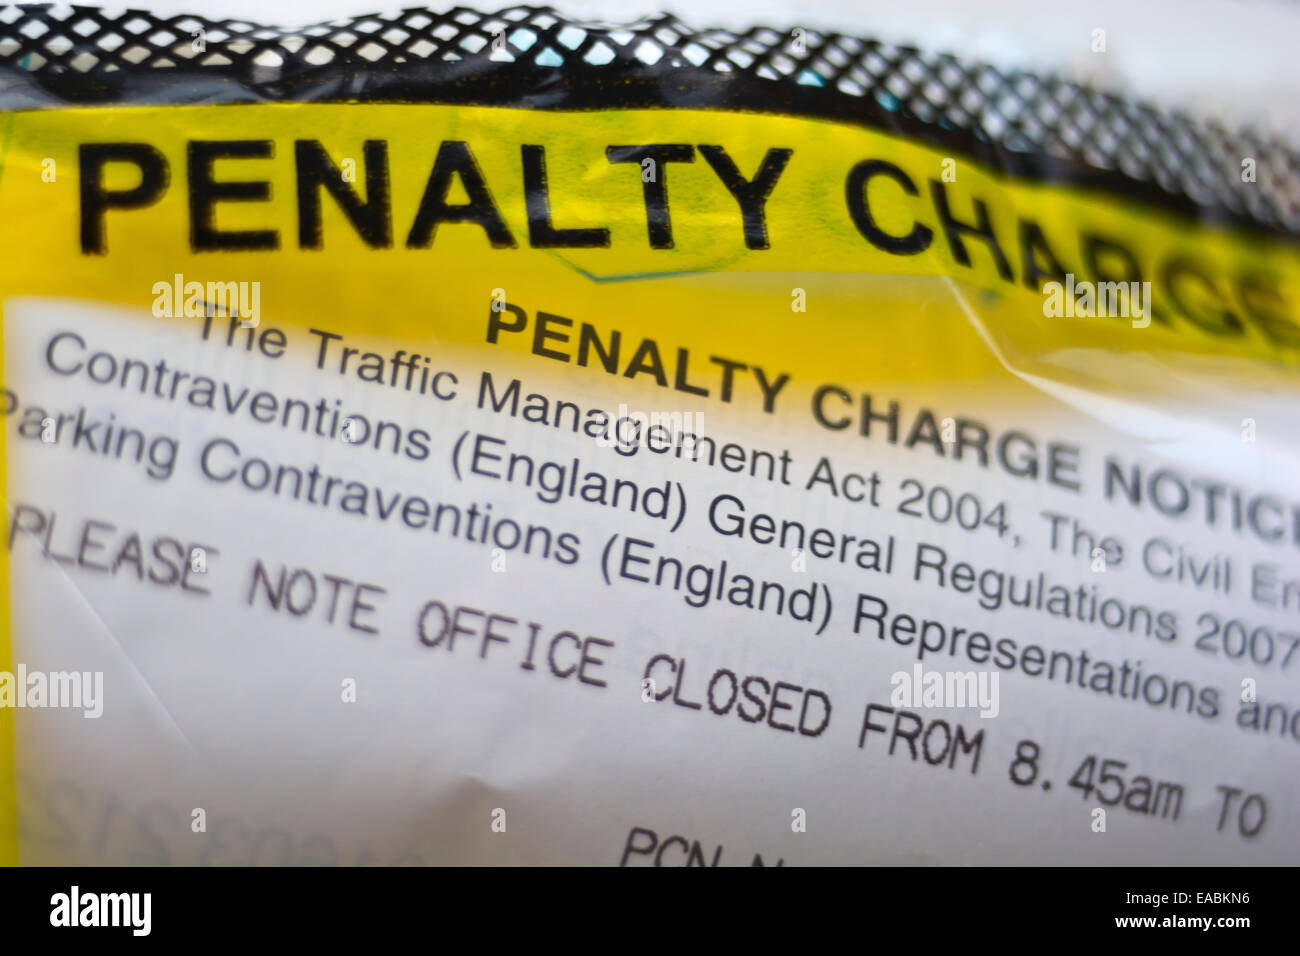 Parking ticket penalty charge Notice - Stock Image